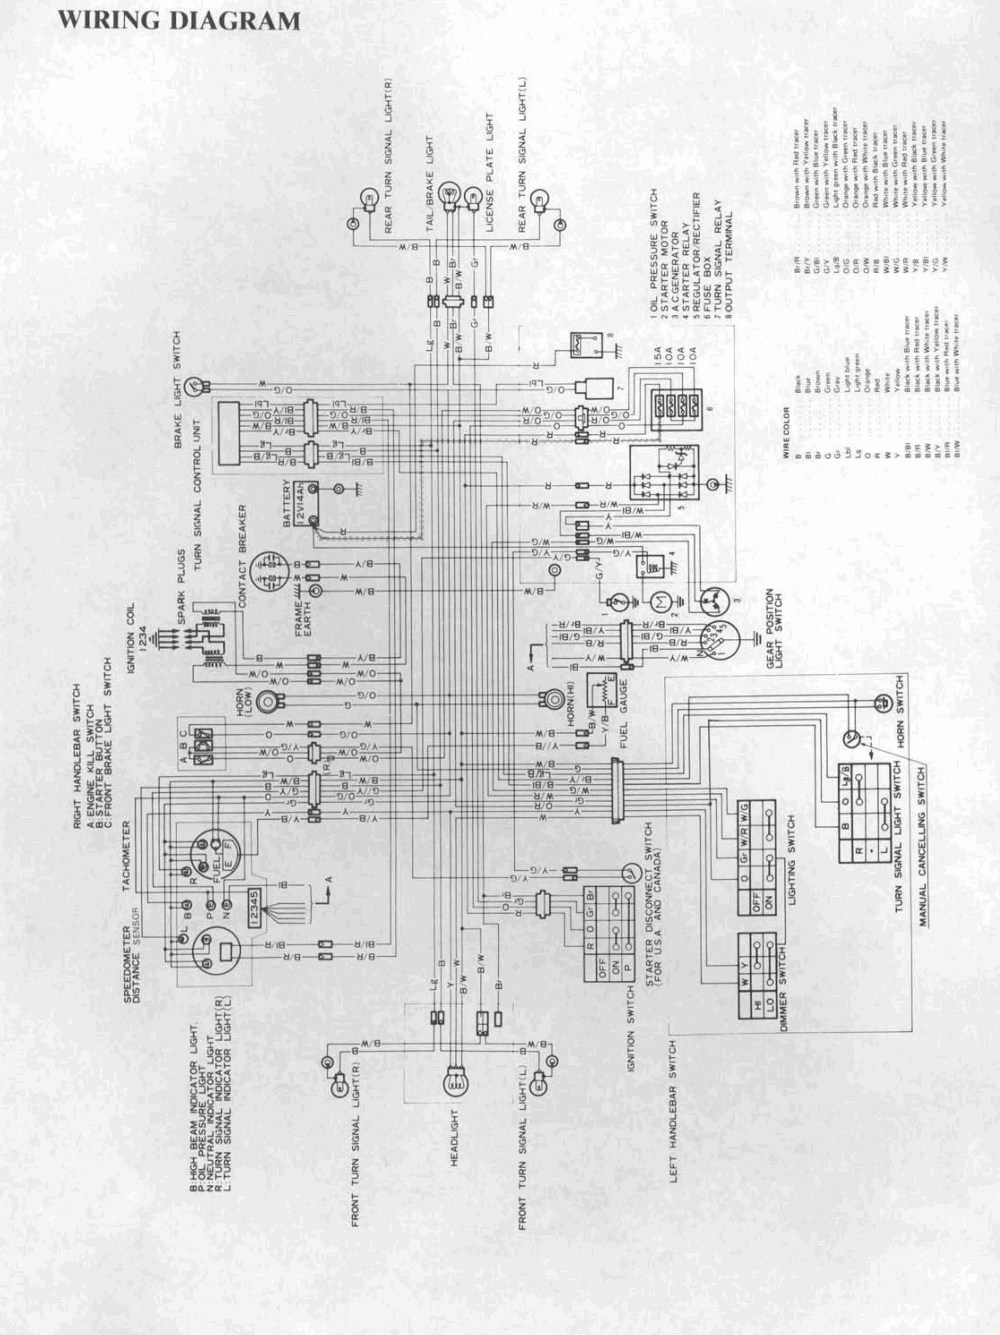 medium resolution of 1982 suzuki gs850 wiring diagram bikecliff s website of 1982 suzuki gs850 wiring diagram 1980 suzuki